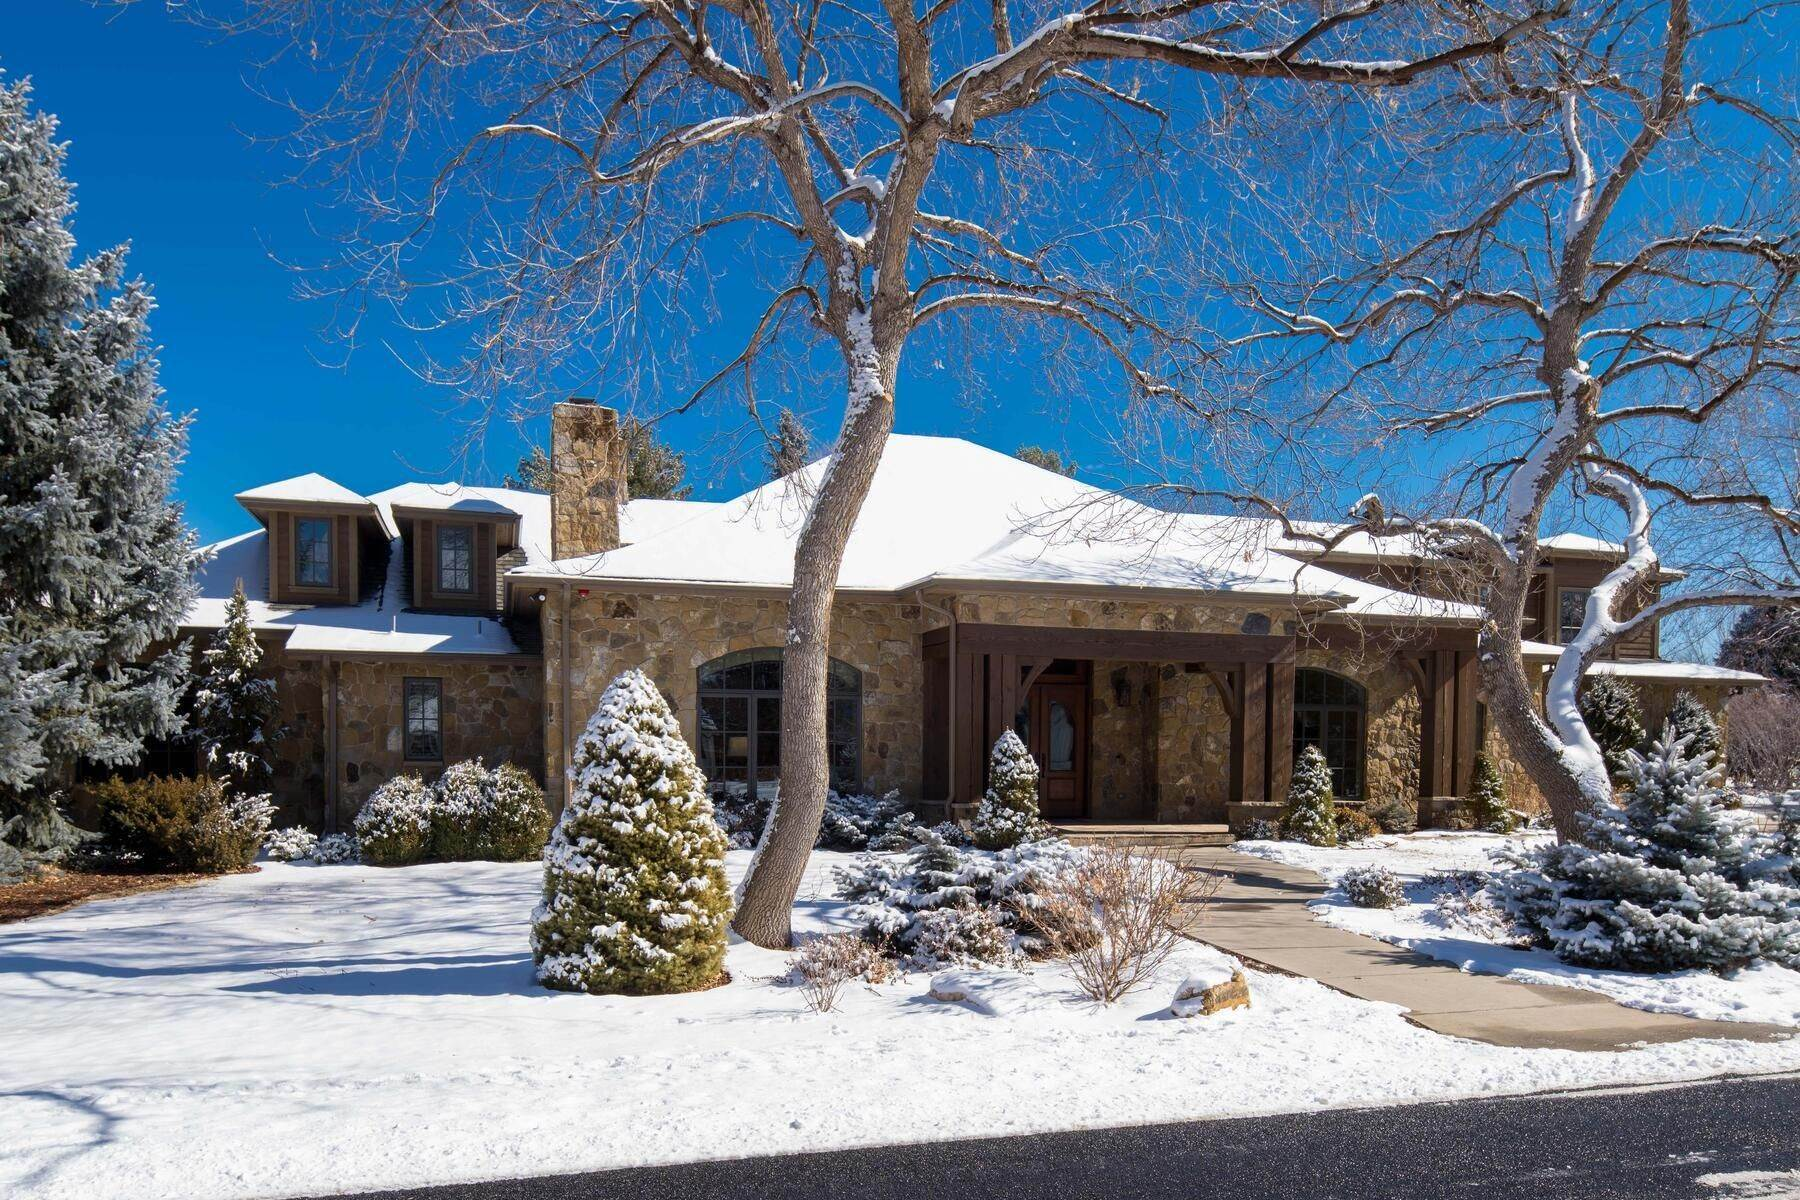 Single Family Homes for Active at 4520 S Downing Circle, Cherry Hills Village, Co, 80113 4520 S Downing Circle Cherry Hills Village, Colorado 80113 United States